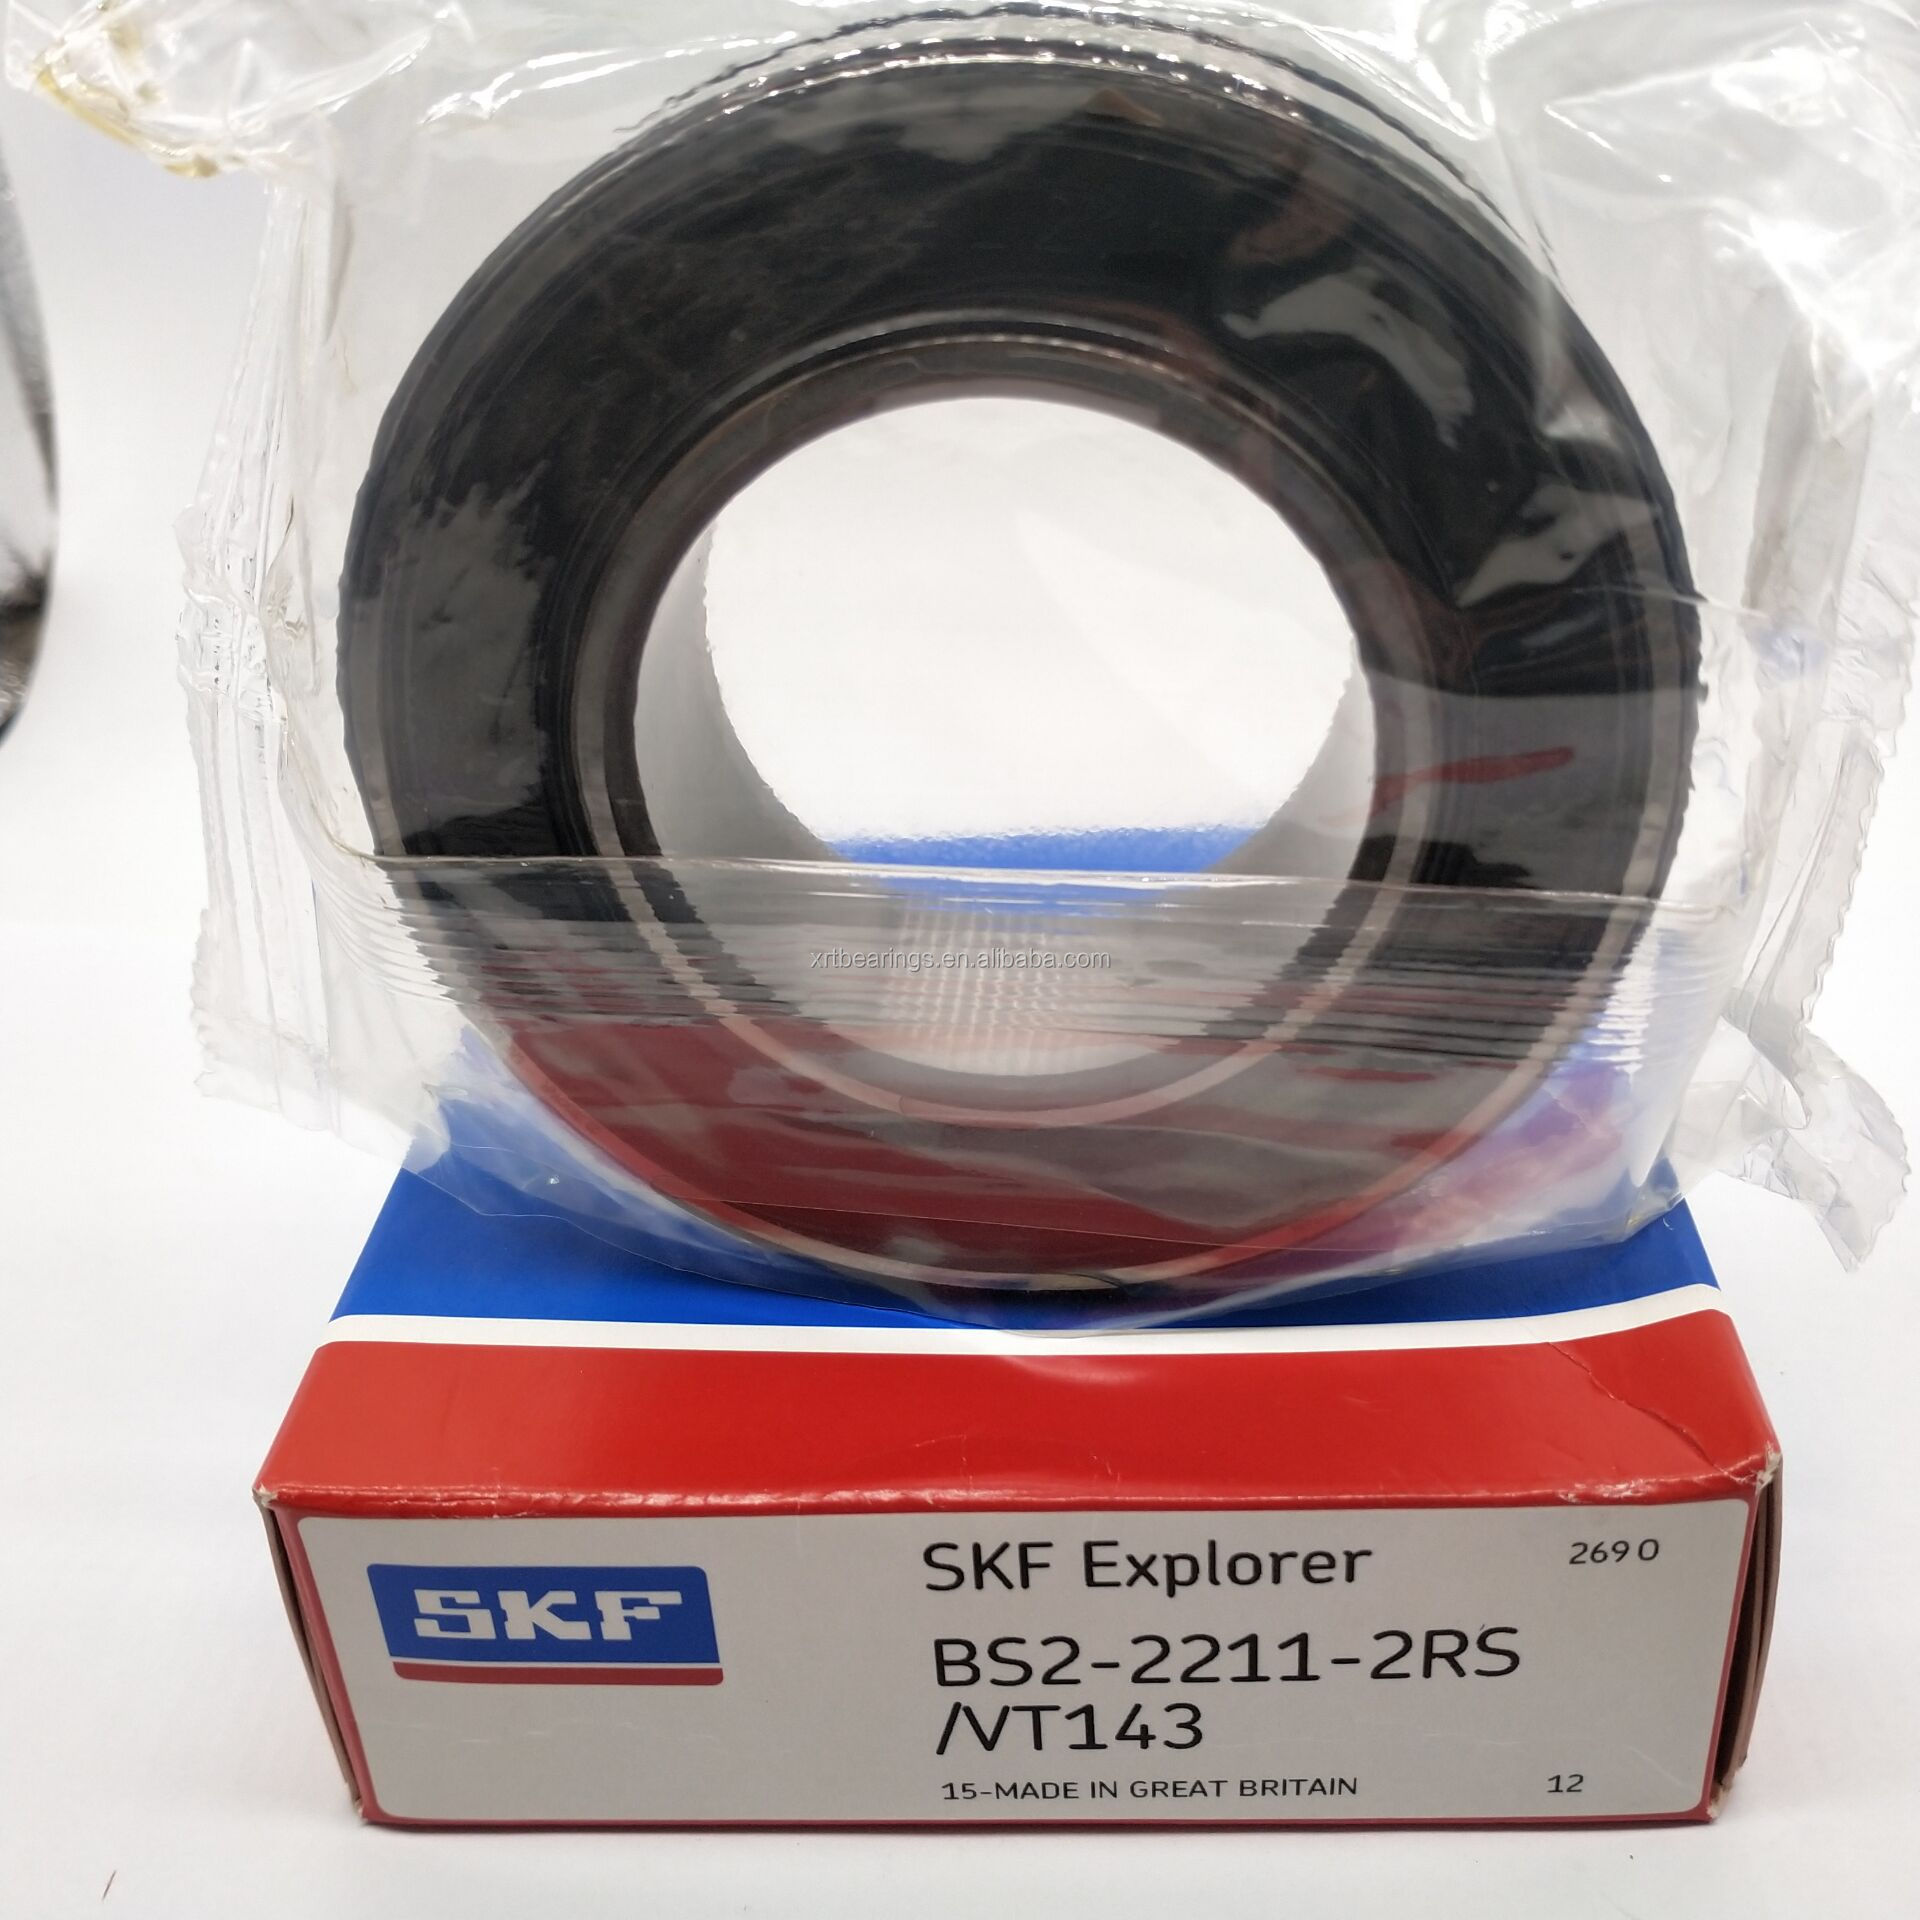 SKF BS2-2207-2RS//VT143 Spherical Roller Bearing 72 mm OD 28 mm Width Sealed 35 mm ID